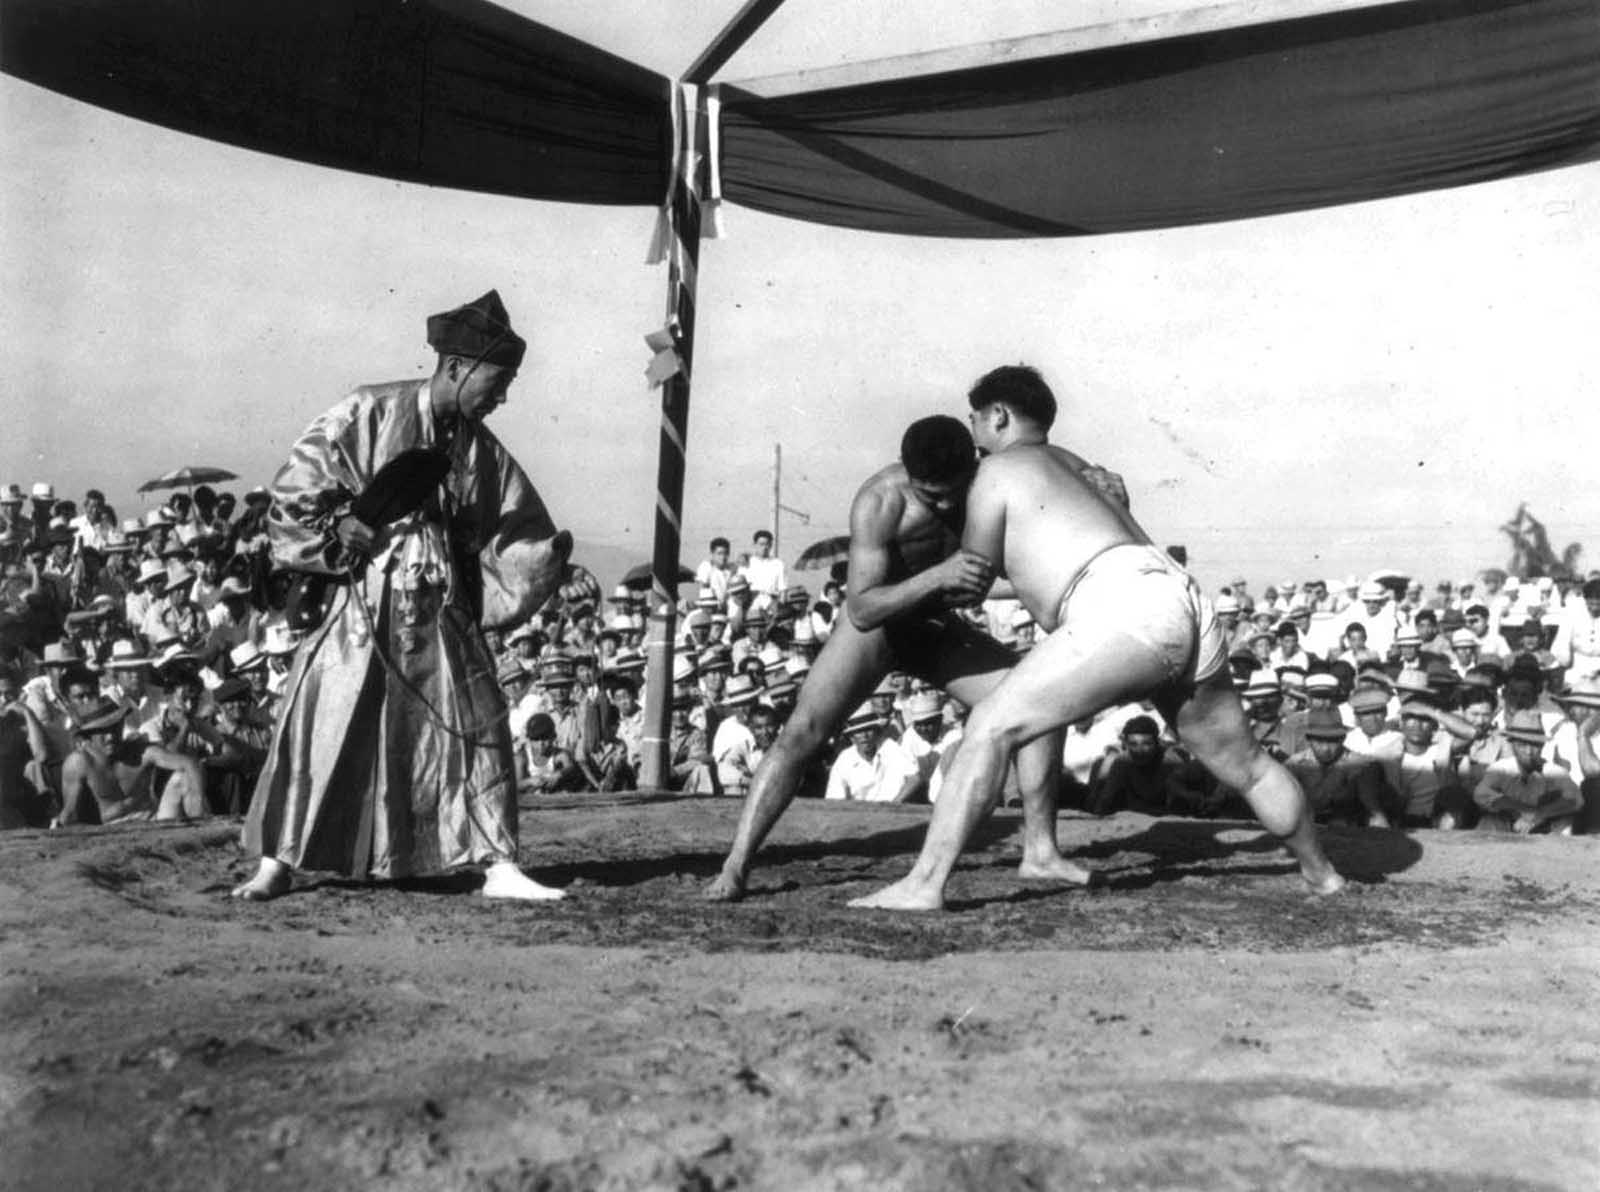 A referee in traditional dress watches over a Sumo wrestling match in front of Japanese-Americans interned at Santa Anita, California.